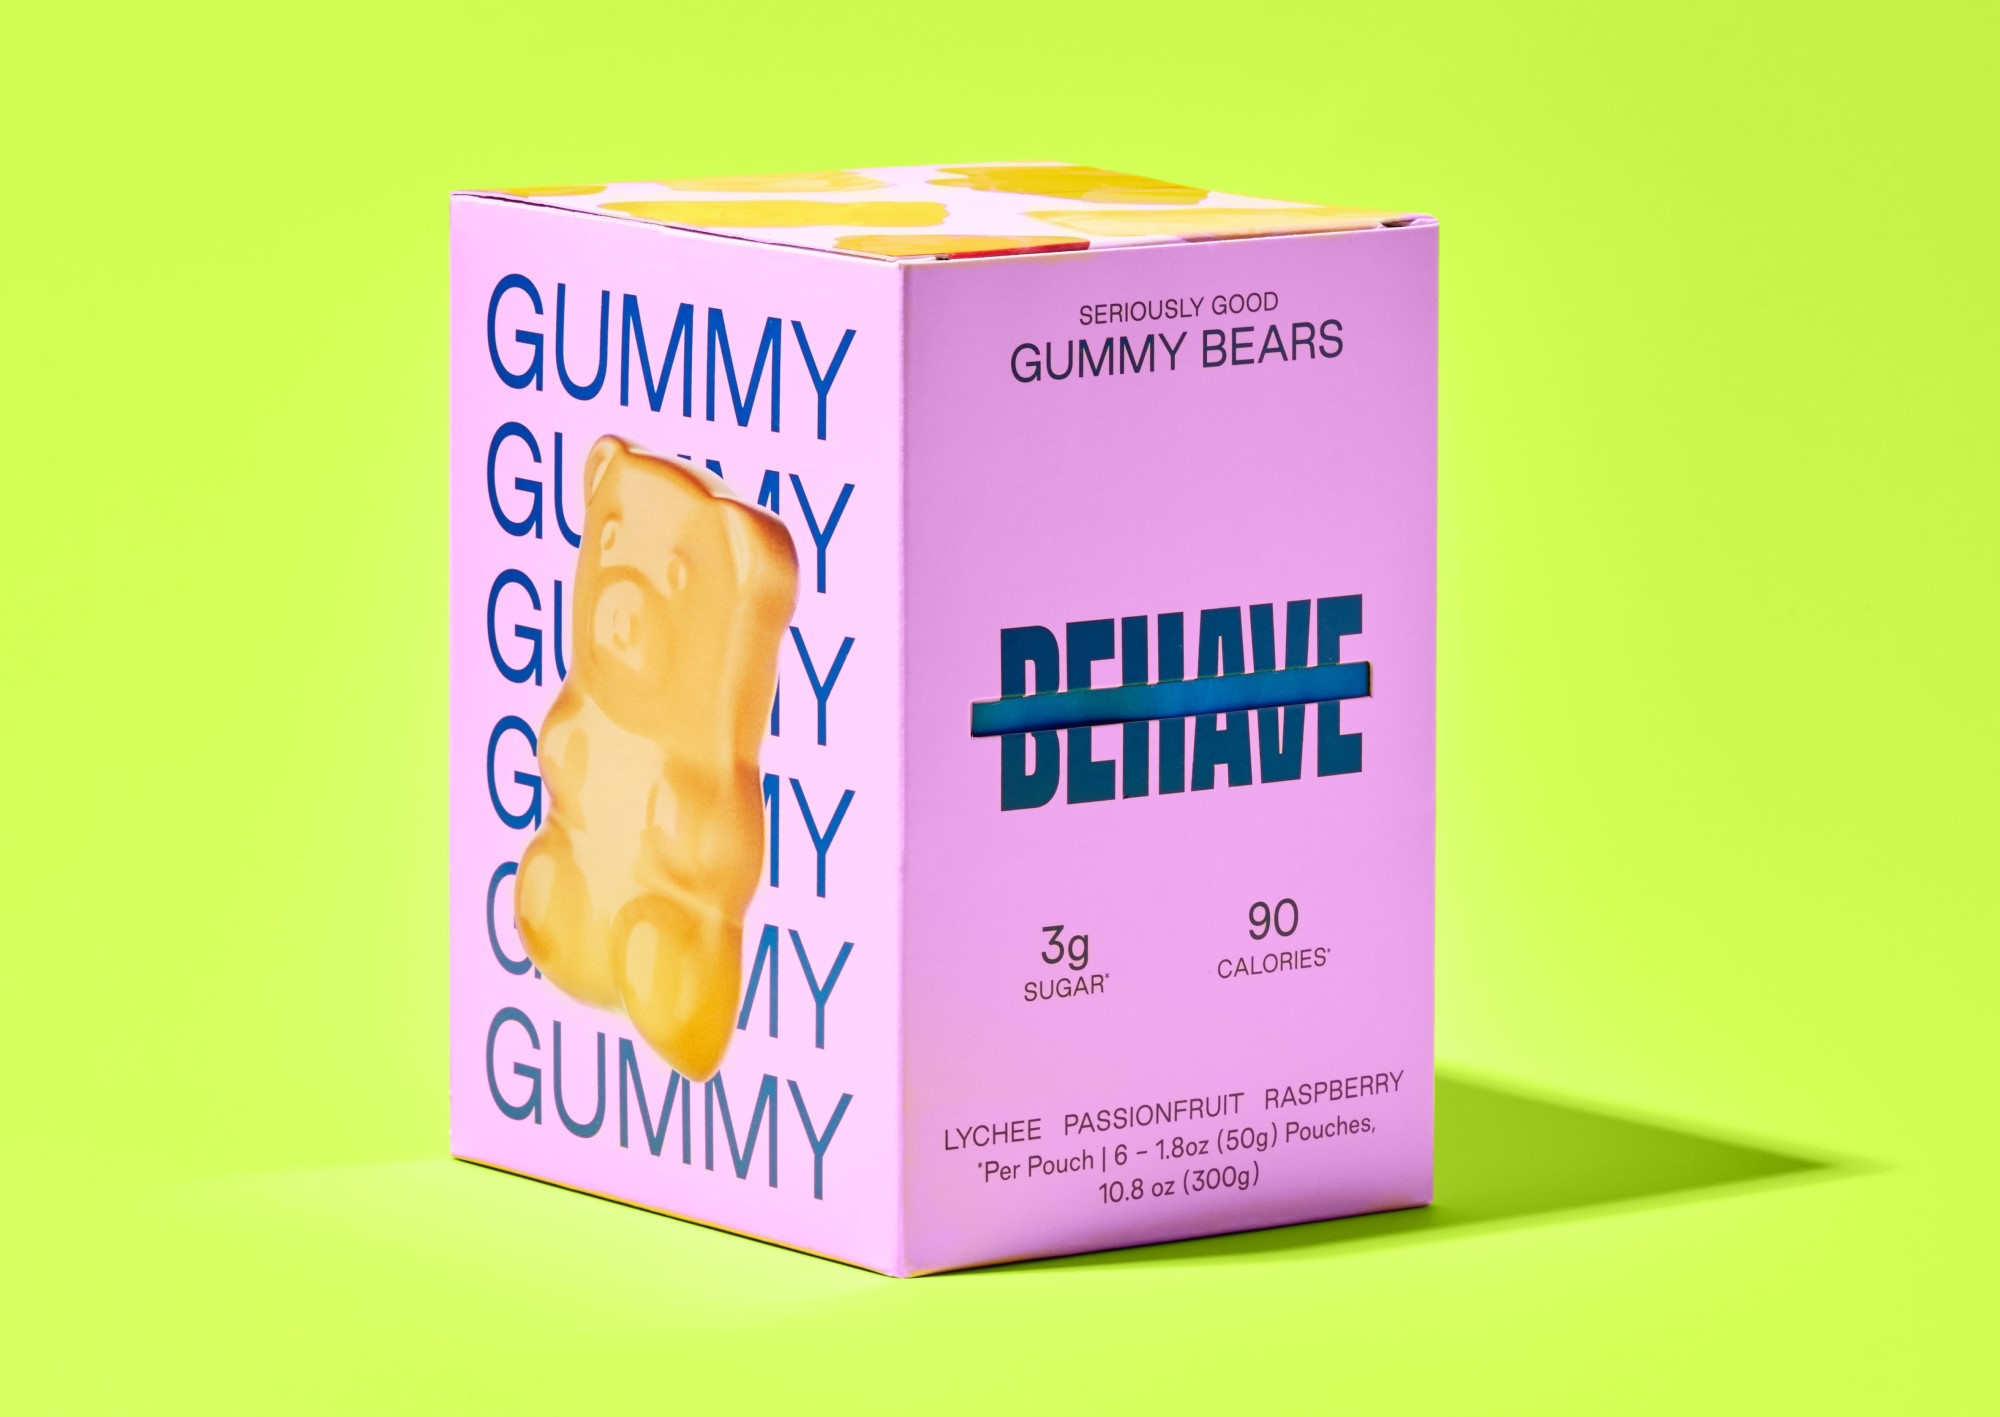 Candy brand Behave launches with low-sugar gummy bears 14